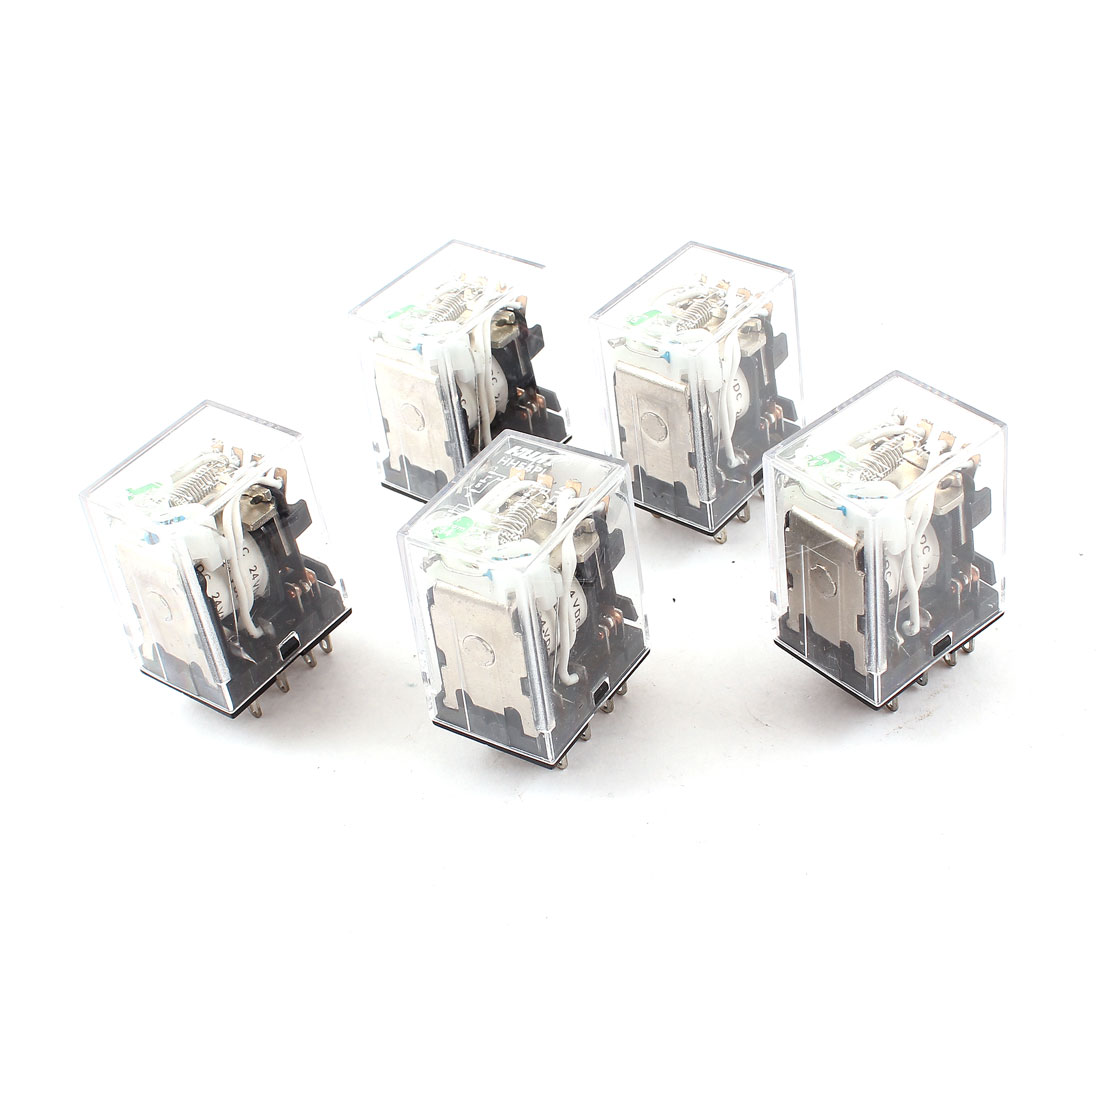 5pcs HH54PL DC 24V Coil 4PDT Green LED Lamp Light General Purpose Power Relay